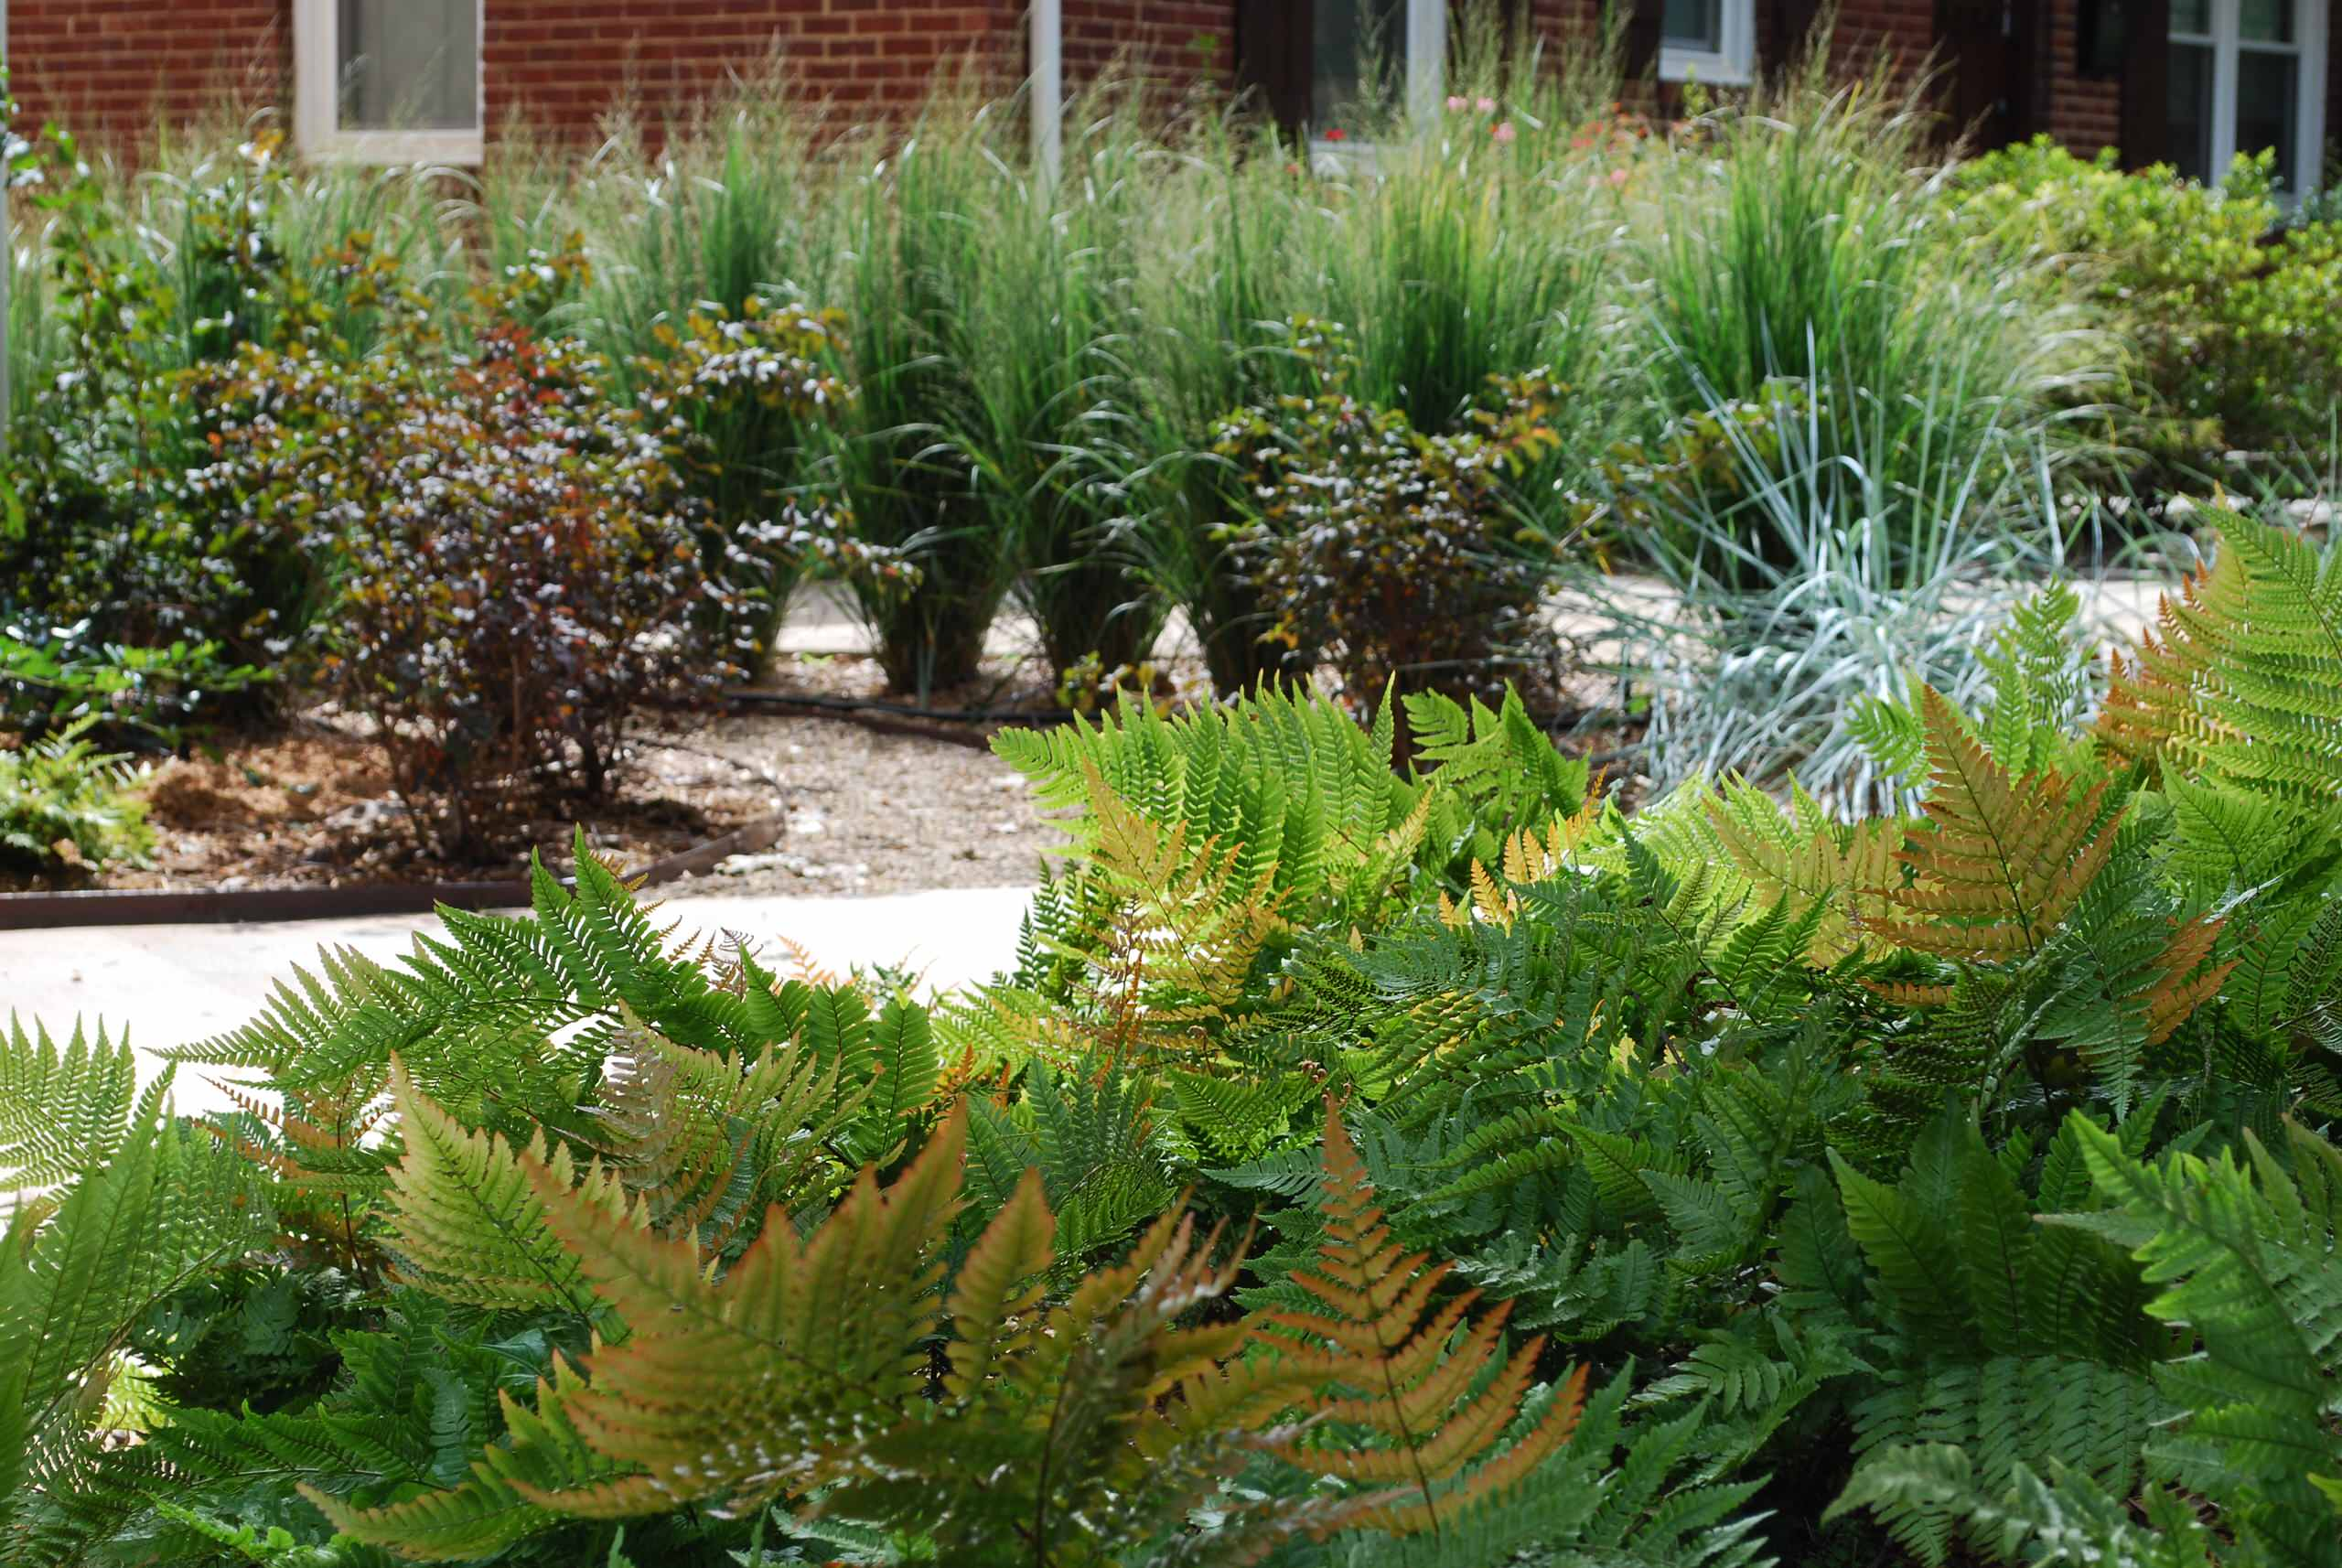 Turf-less front yard provides unexpected color and texture.